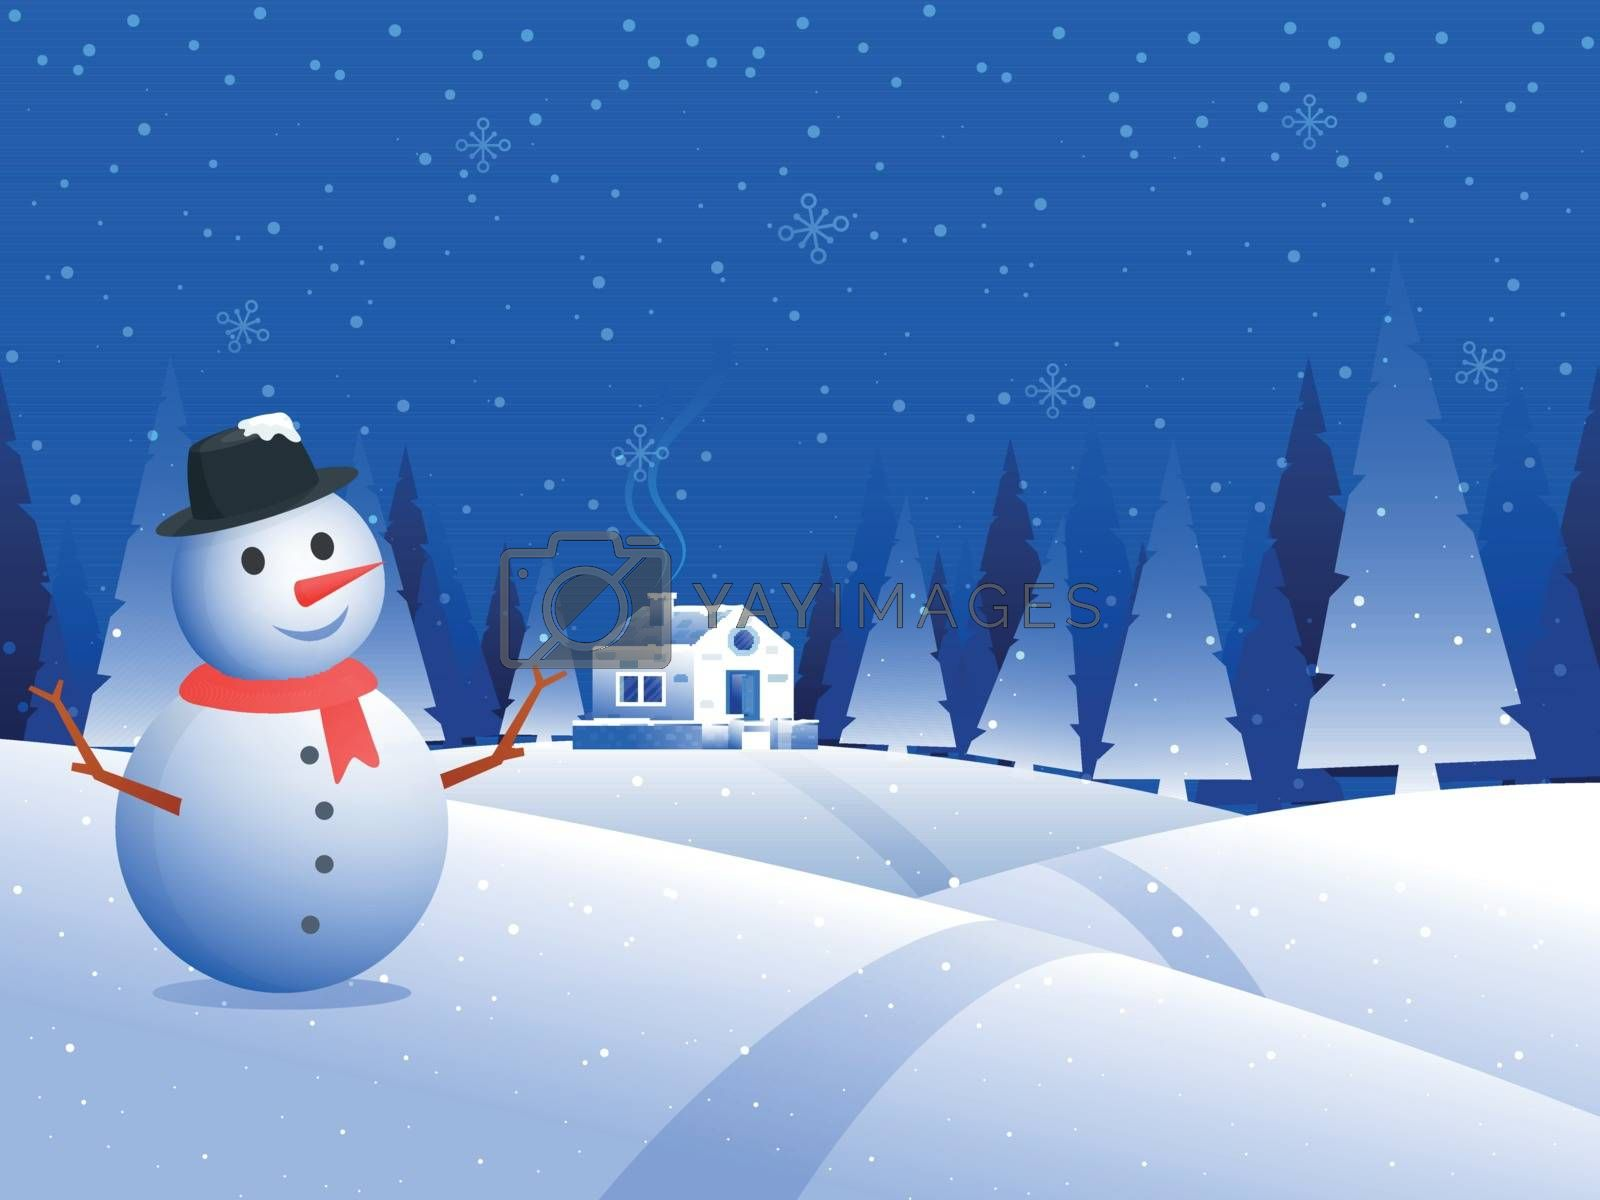 Illustration of snowman with snow capped house on winter background. Can be used as greeting card design.